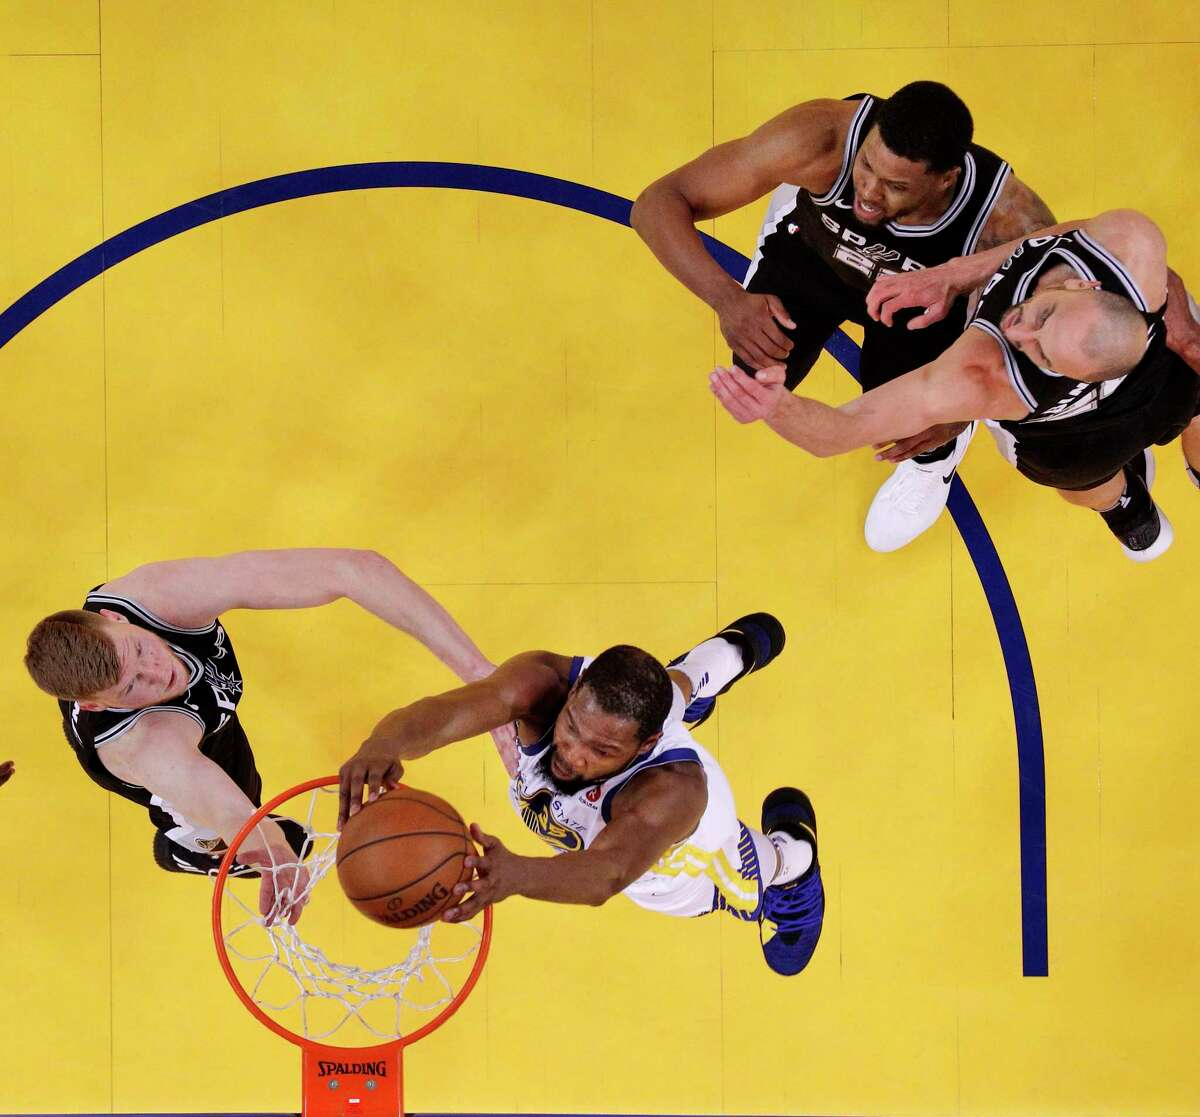 Kevin Durant (35) dunks over Davis Bertans (42) in the second half as the Golden State Warriors played the San Antonio Spurs in Game 5 of the first round of the Western Conference Finals at Oracle Arena in Oakland, Calif., on Tuesday, April 24, 2018. The Warriors won 99-91 to win the series and advance to the second round.